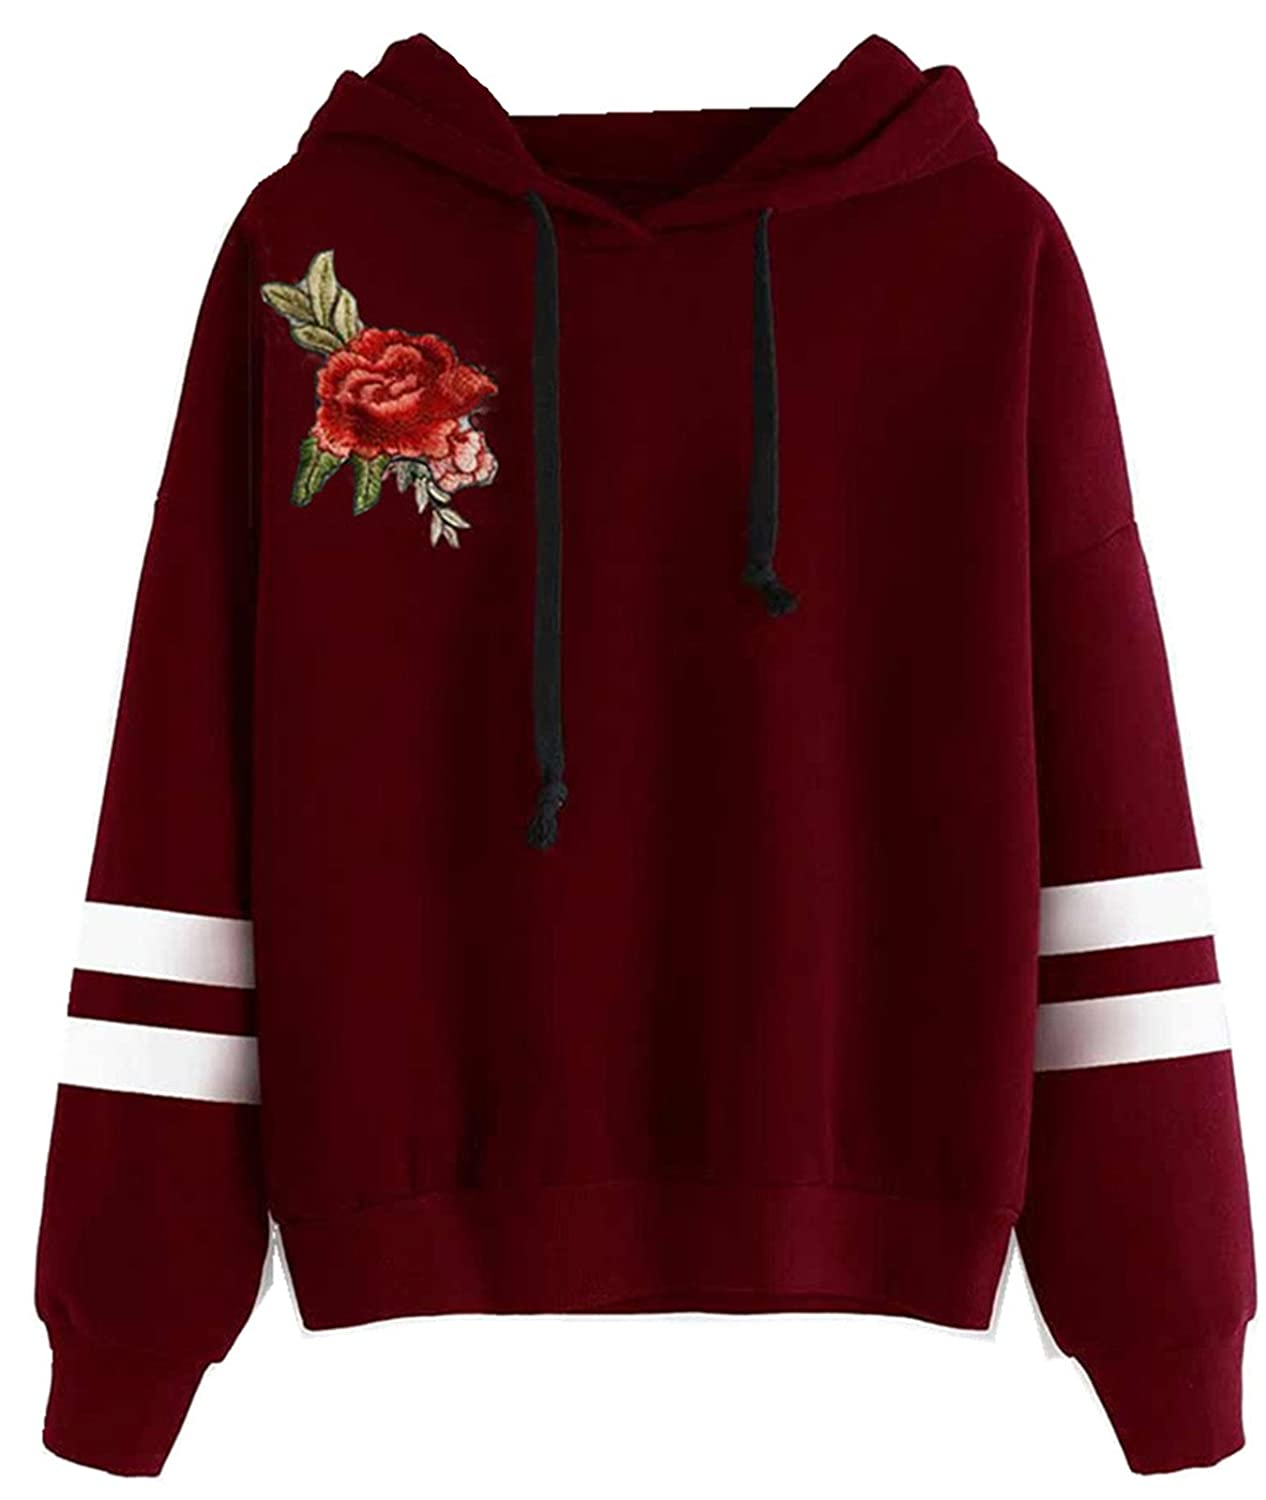 Arctic Cubic Long Sleeve Hoodie Hooded Hood Rose Flower Embroidered Varsity Striped Stripe Sweatshirt T-Shirt Top at Amazon Womens Clothing store: